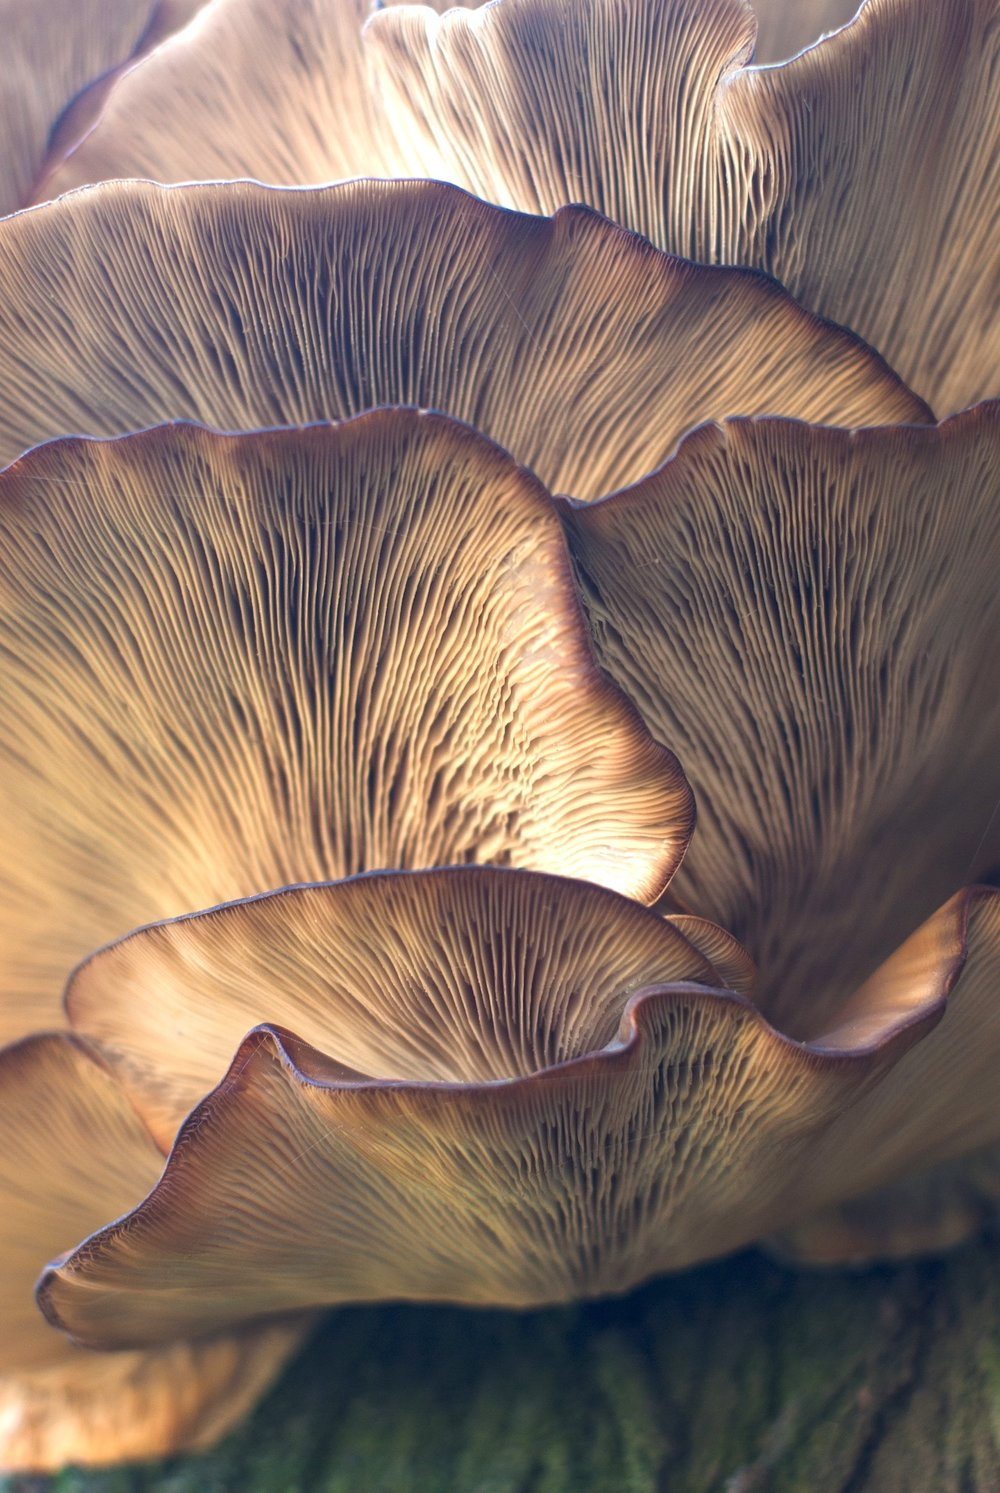 Oyster Mushrooms: Damir Omerovic, Unsplash.